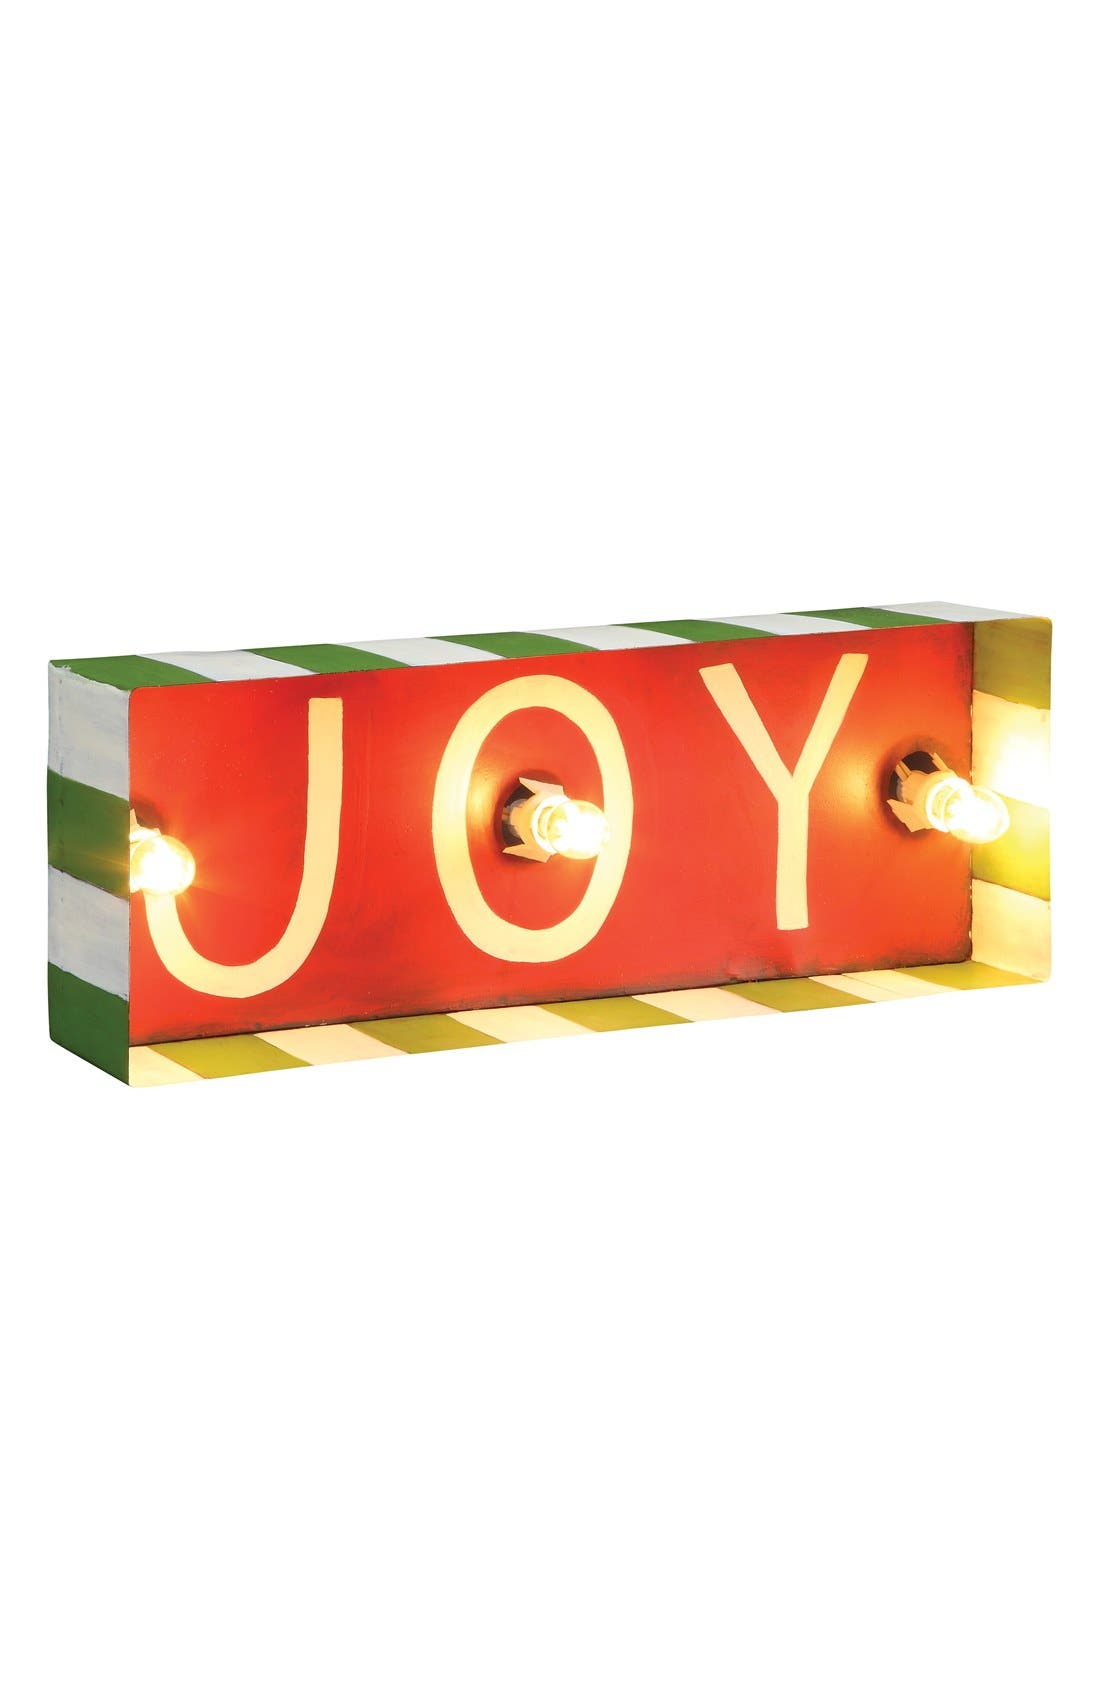 Alternate Image 1 Selected - Roman 'Joy' Lighted Box Sign